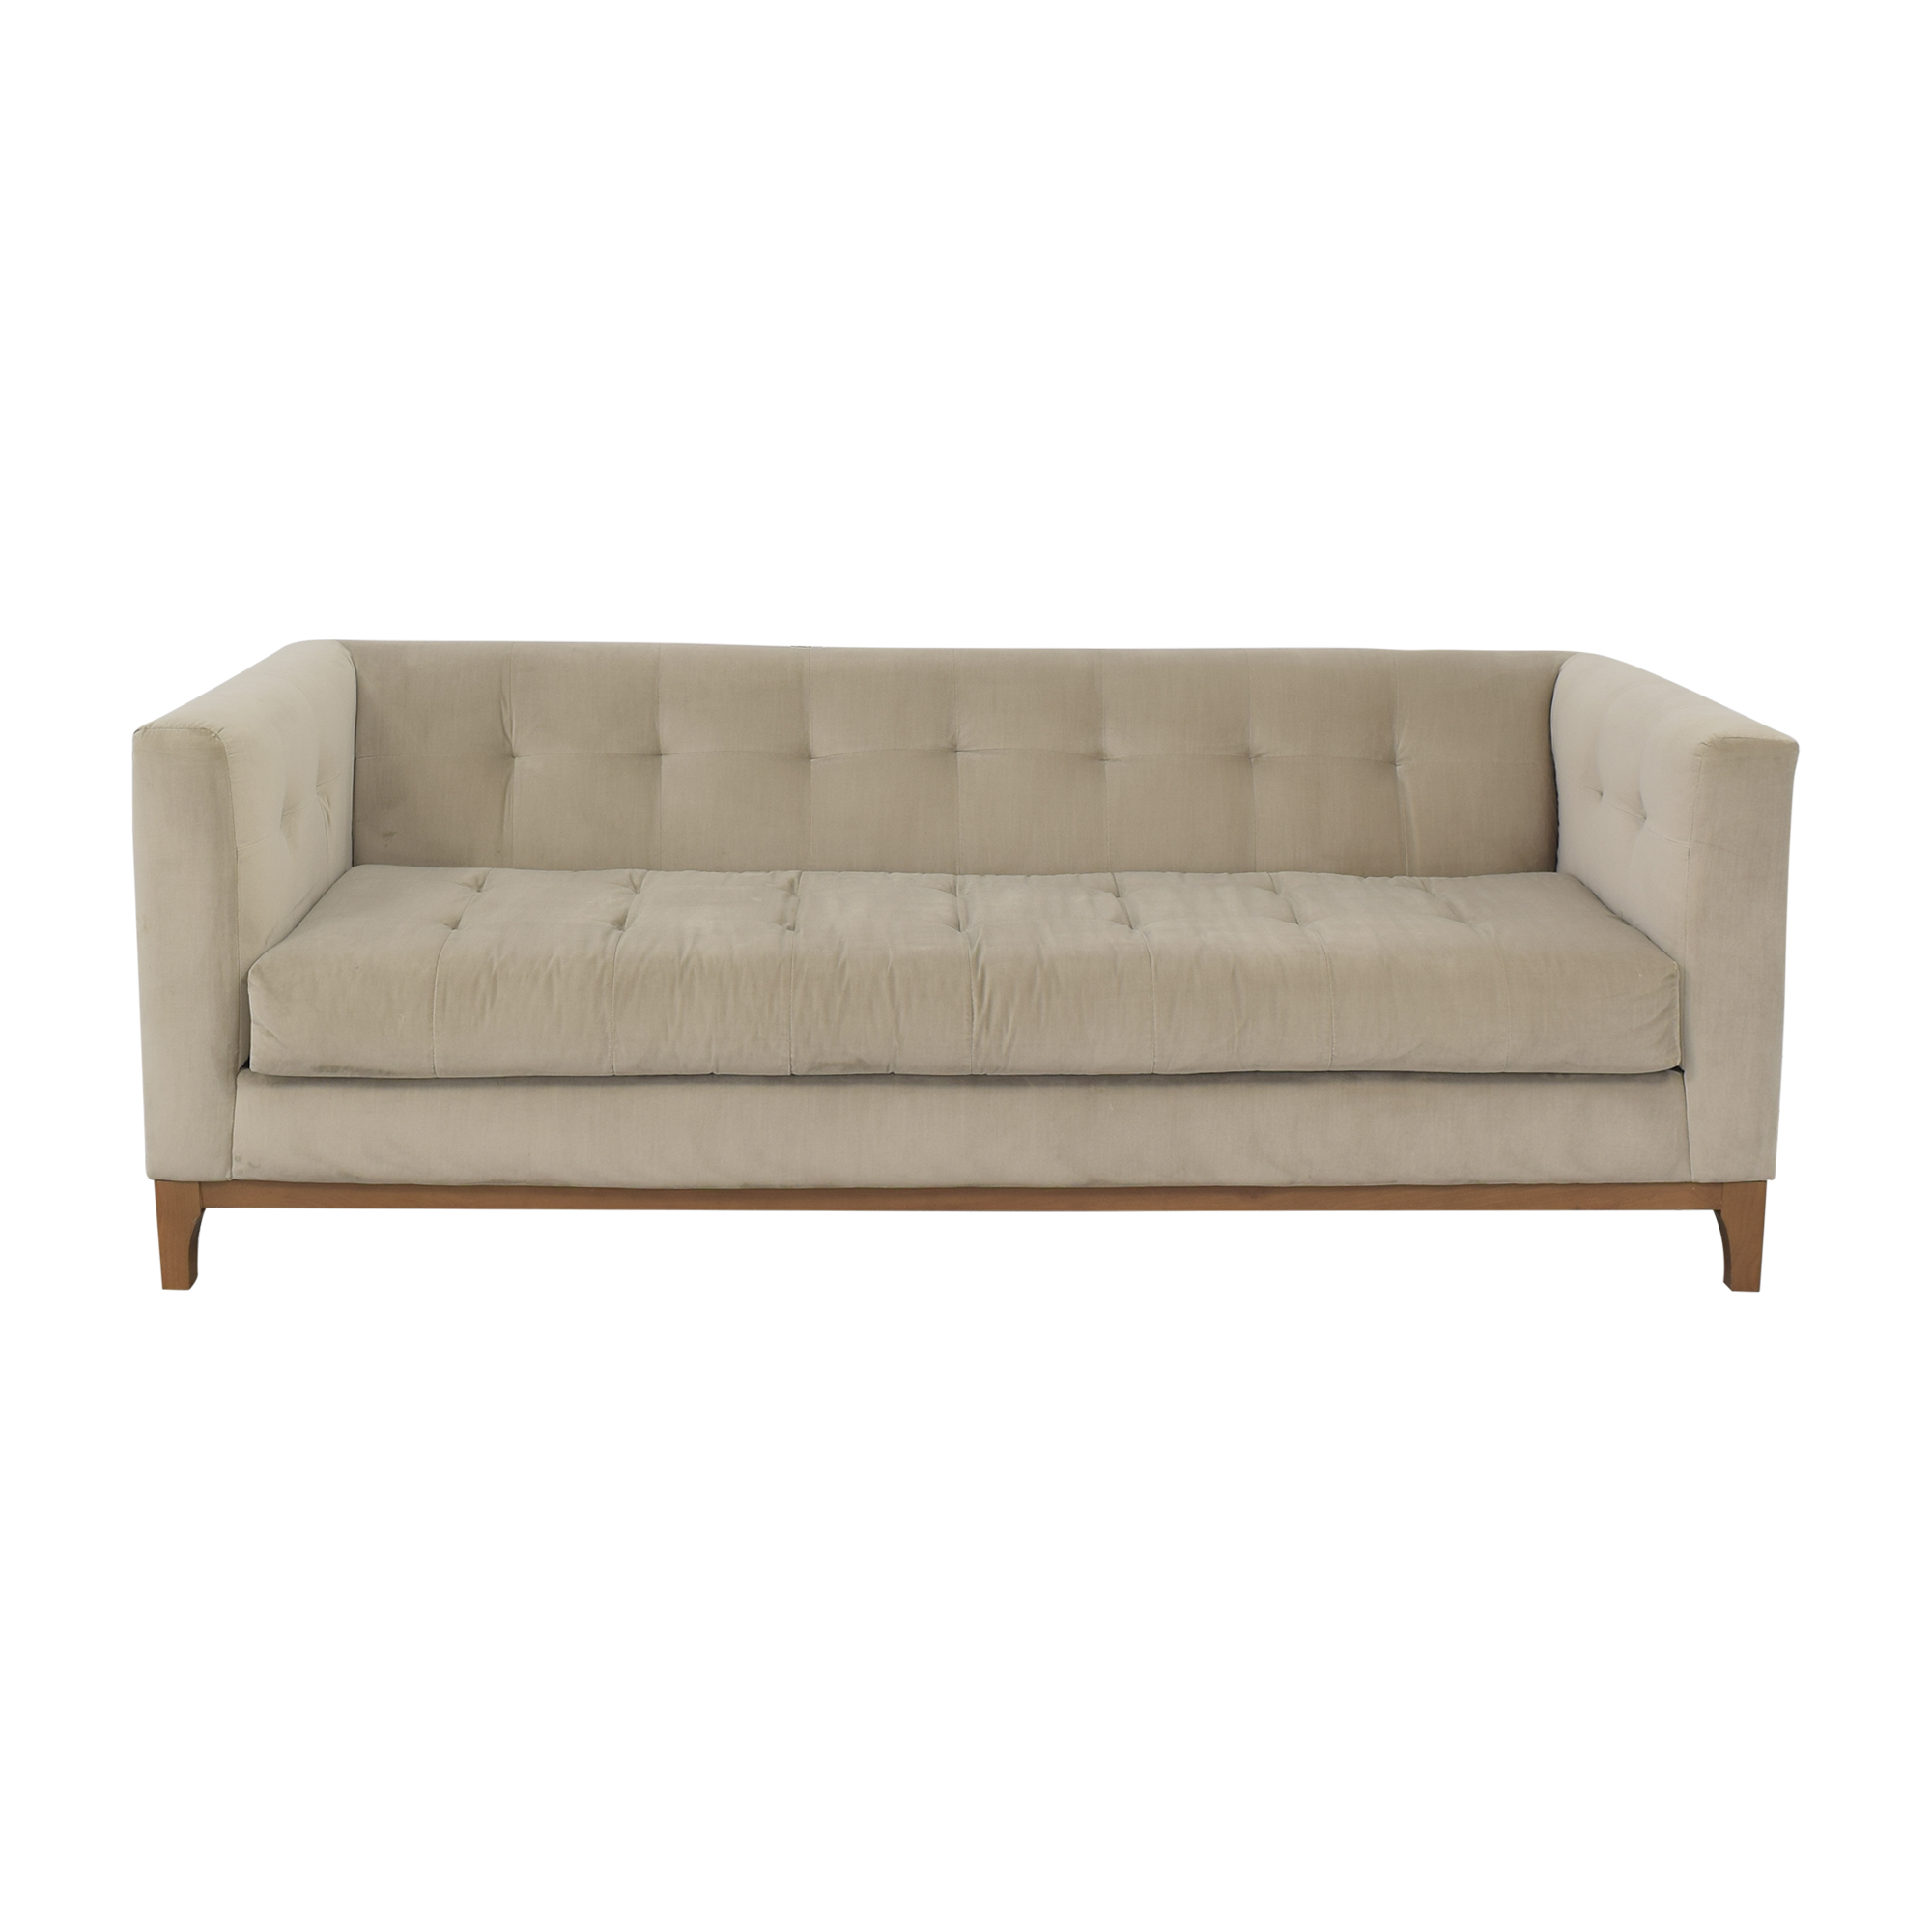 Macy's Martha Stewart Collection Brookline Sofa / Classic Sofas